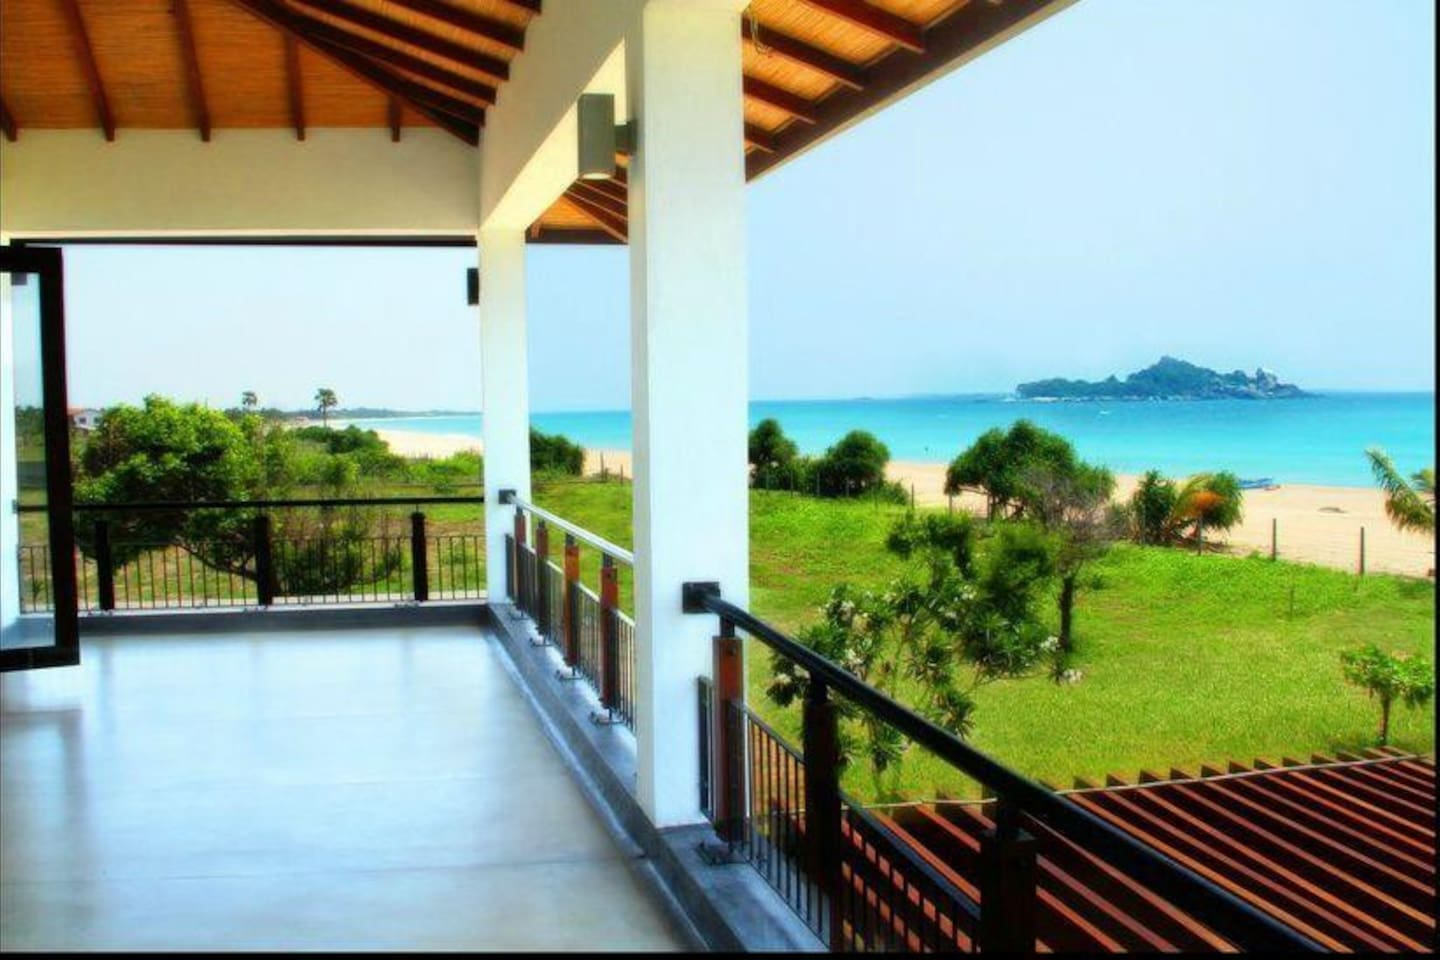 All The Rooms in the Villa will have an amazing view of the Ocean. The Pigeons Island is also visible from the Villa.  This Picture is taken from the 1st Floor Balcony; Which is equipped comfortable Outdoor Sofas for Lounging.